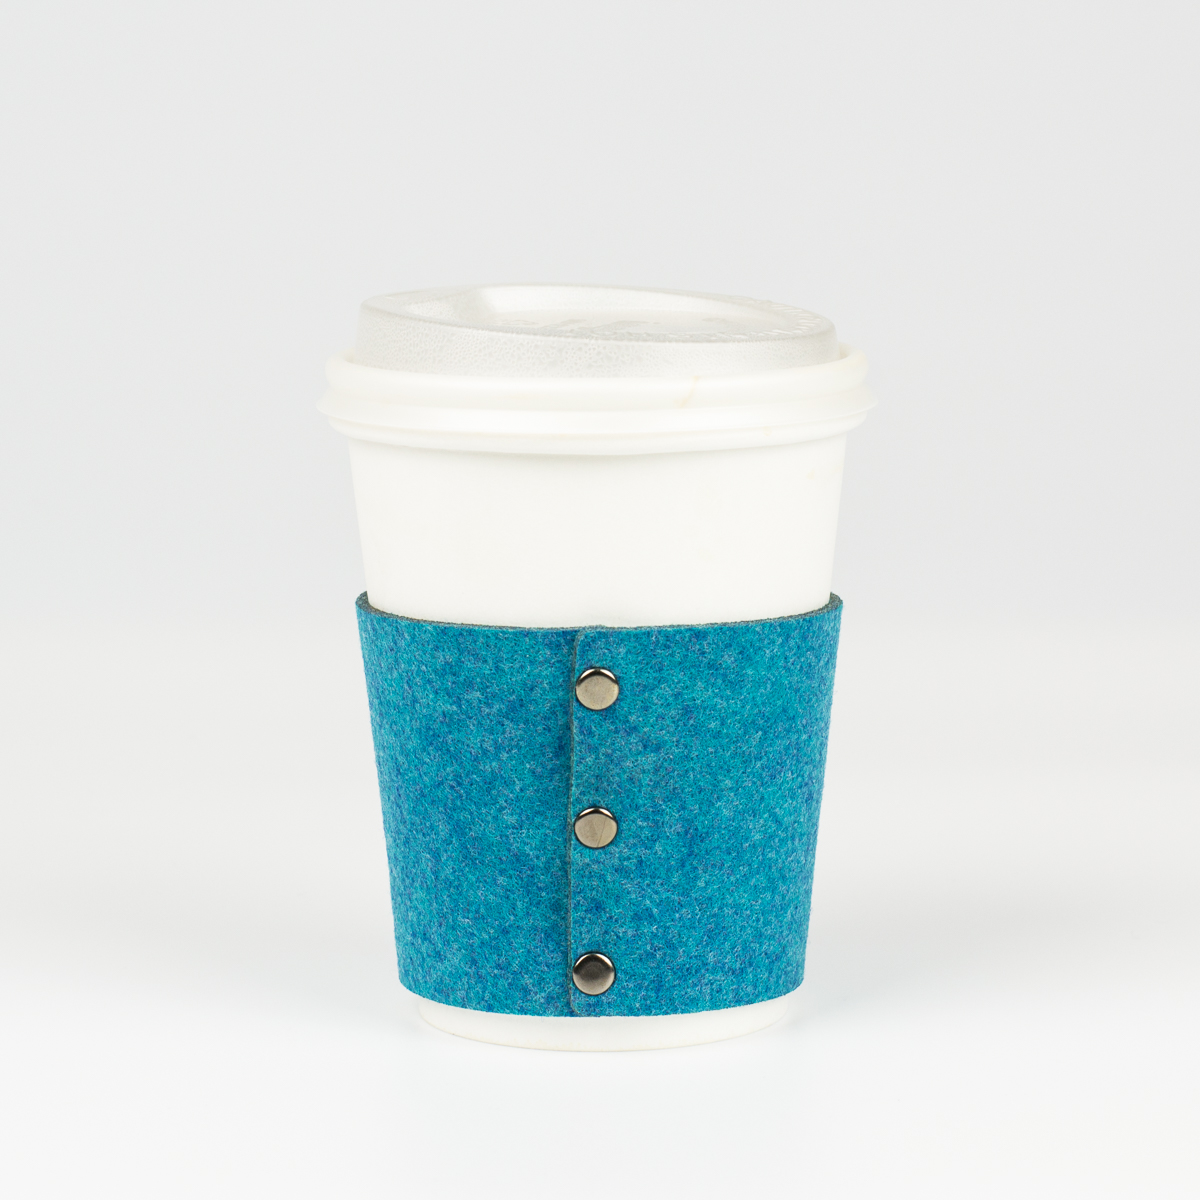 creative promotional product ideas - coffee sleeves